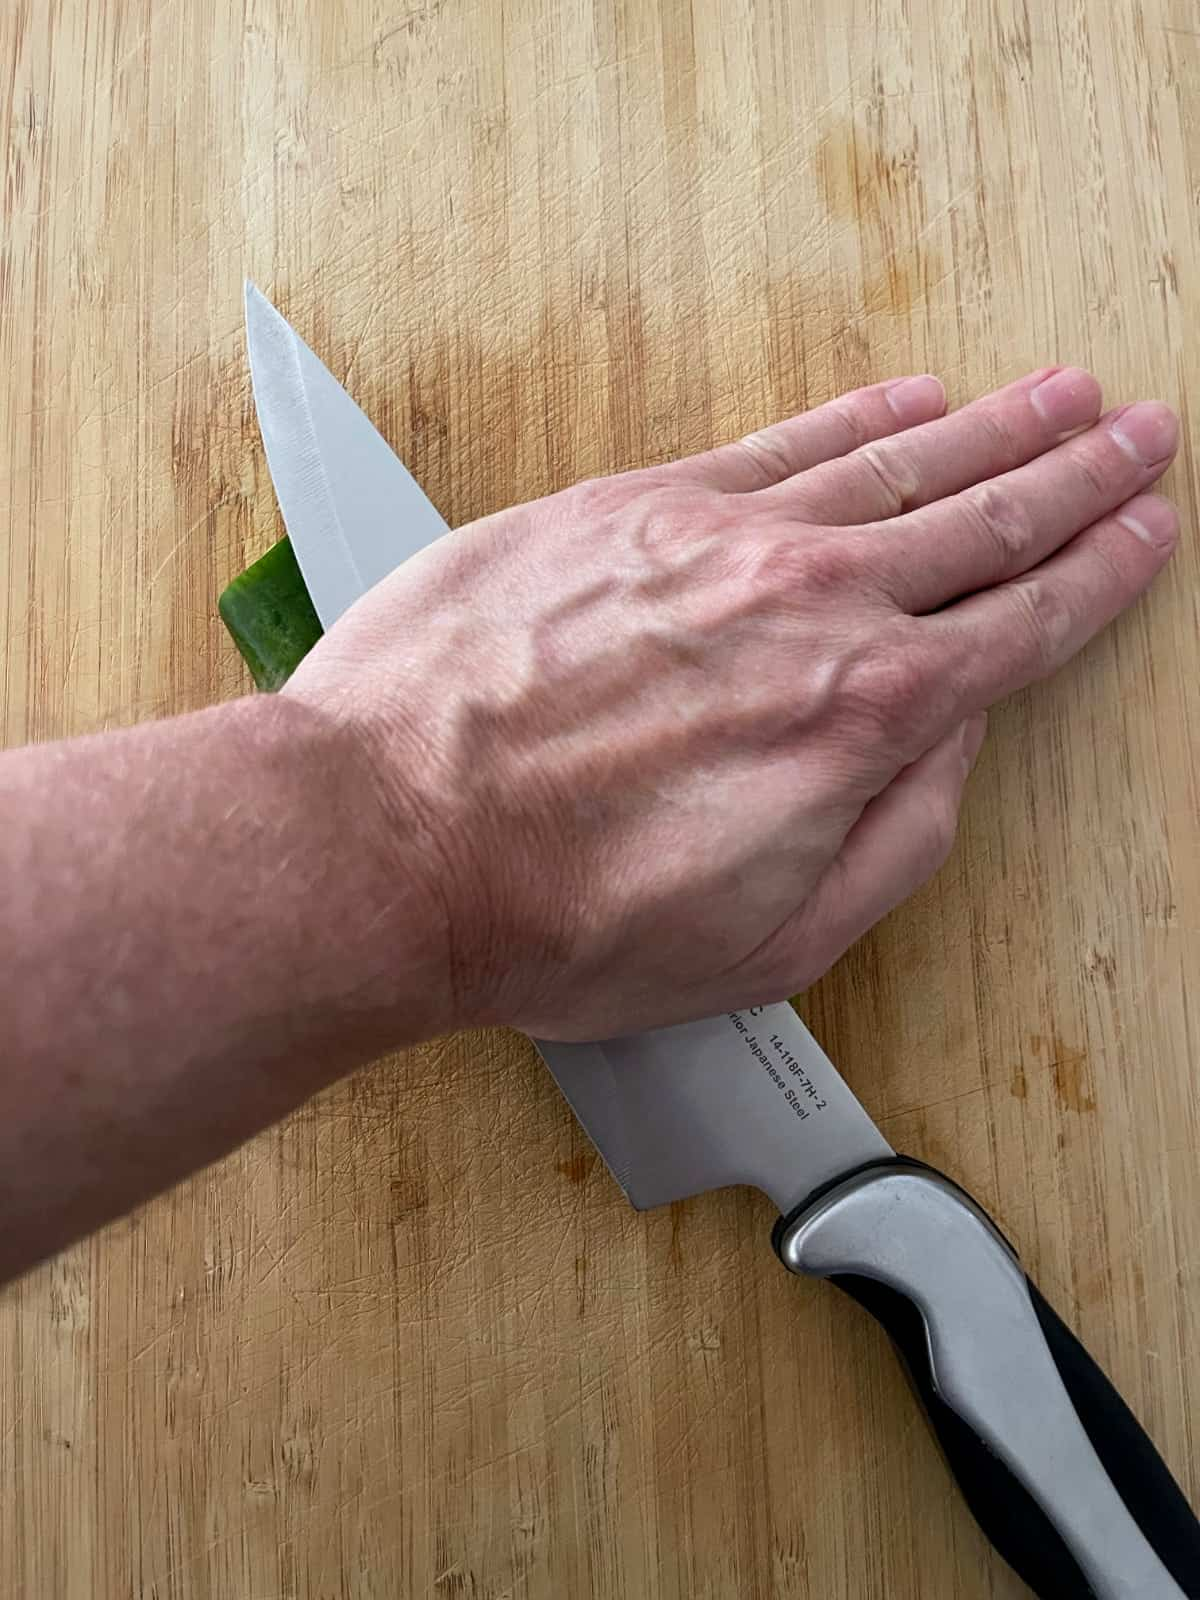 Pressing chef's knife over mini Persian cucumber on wooden cutting board.